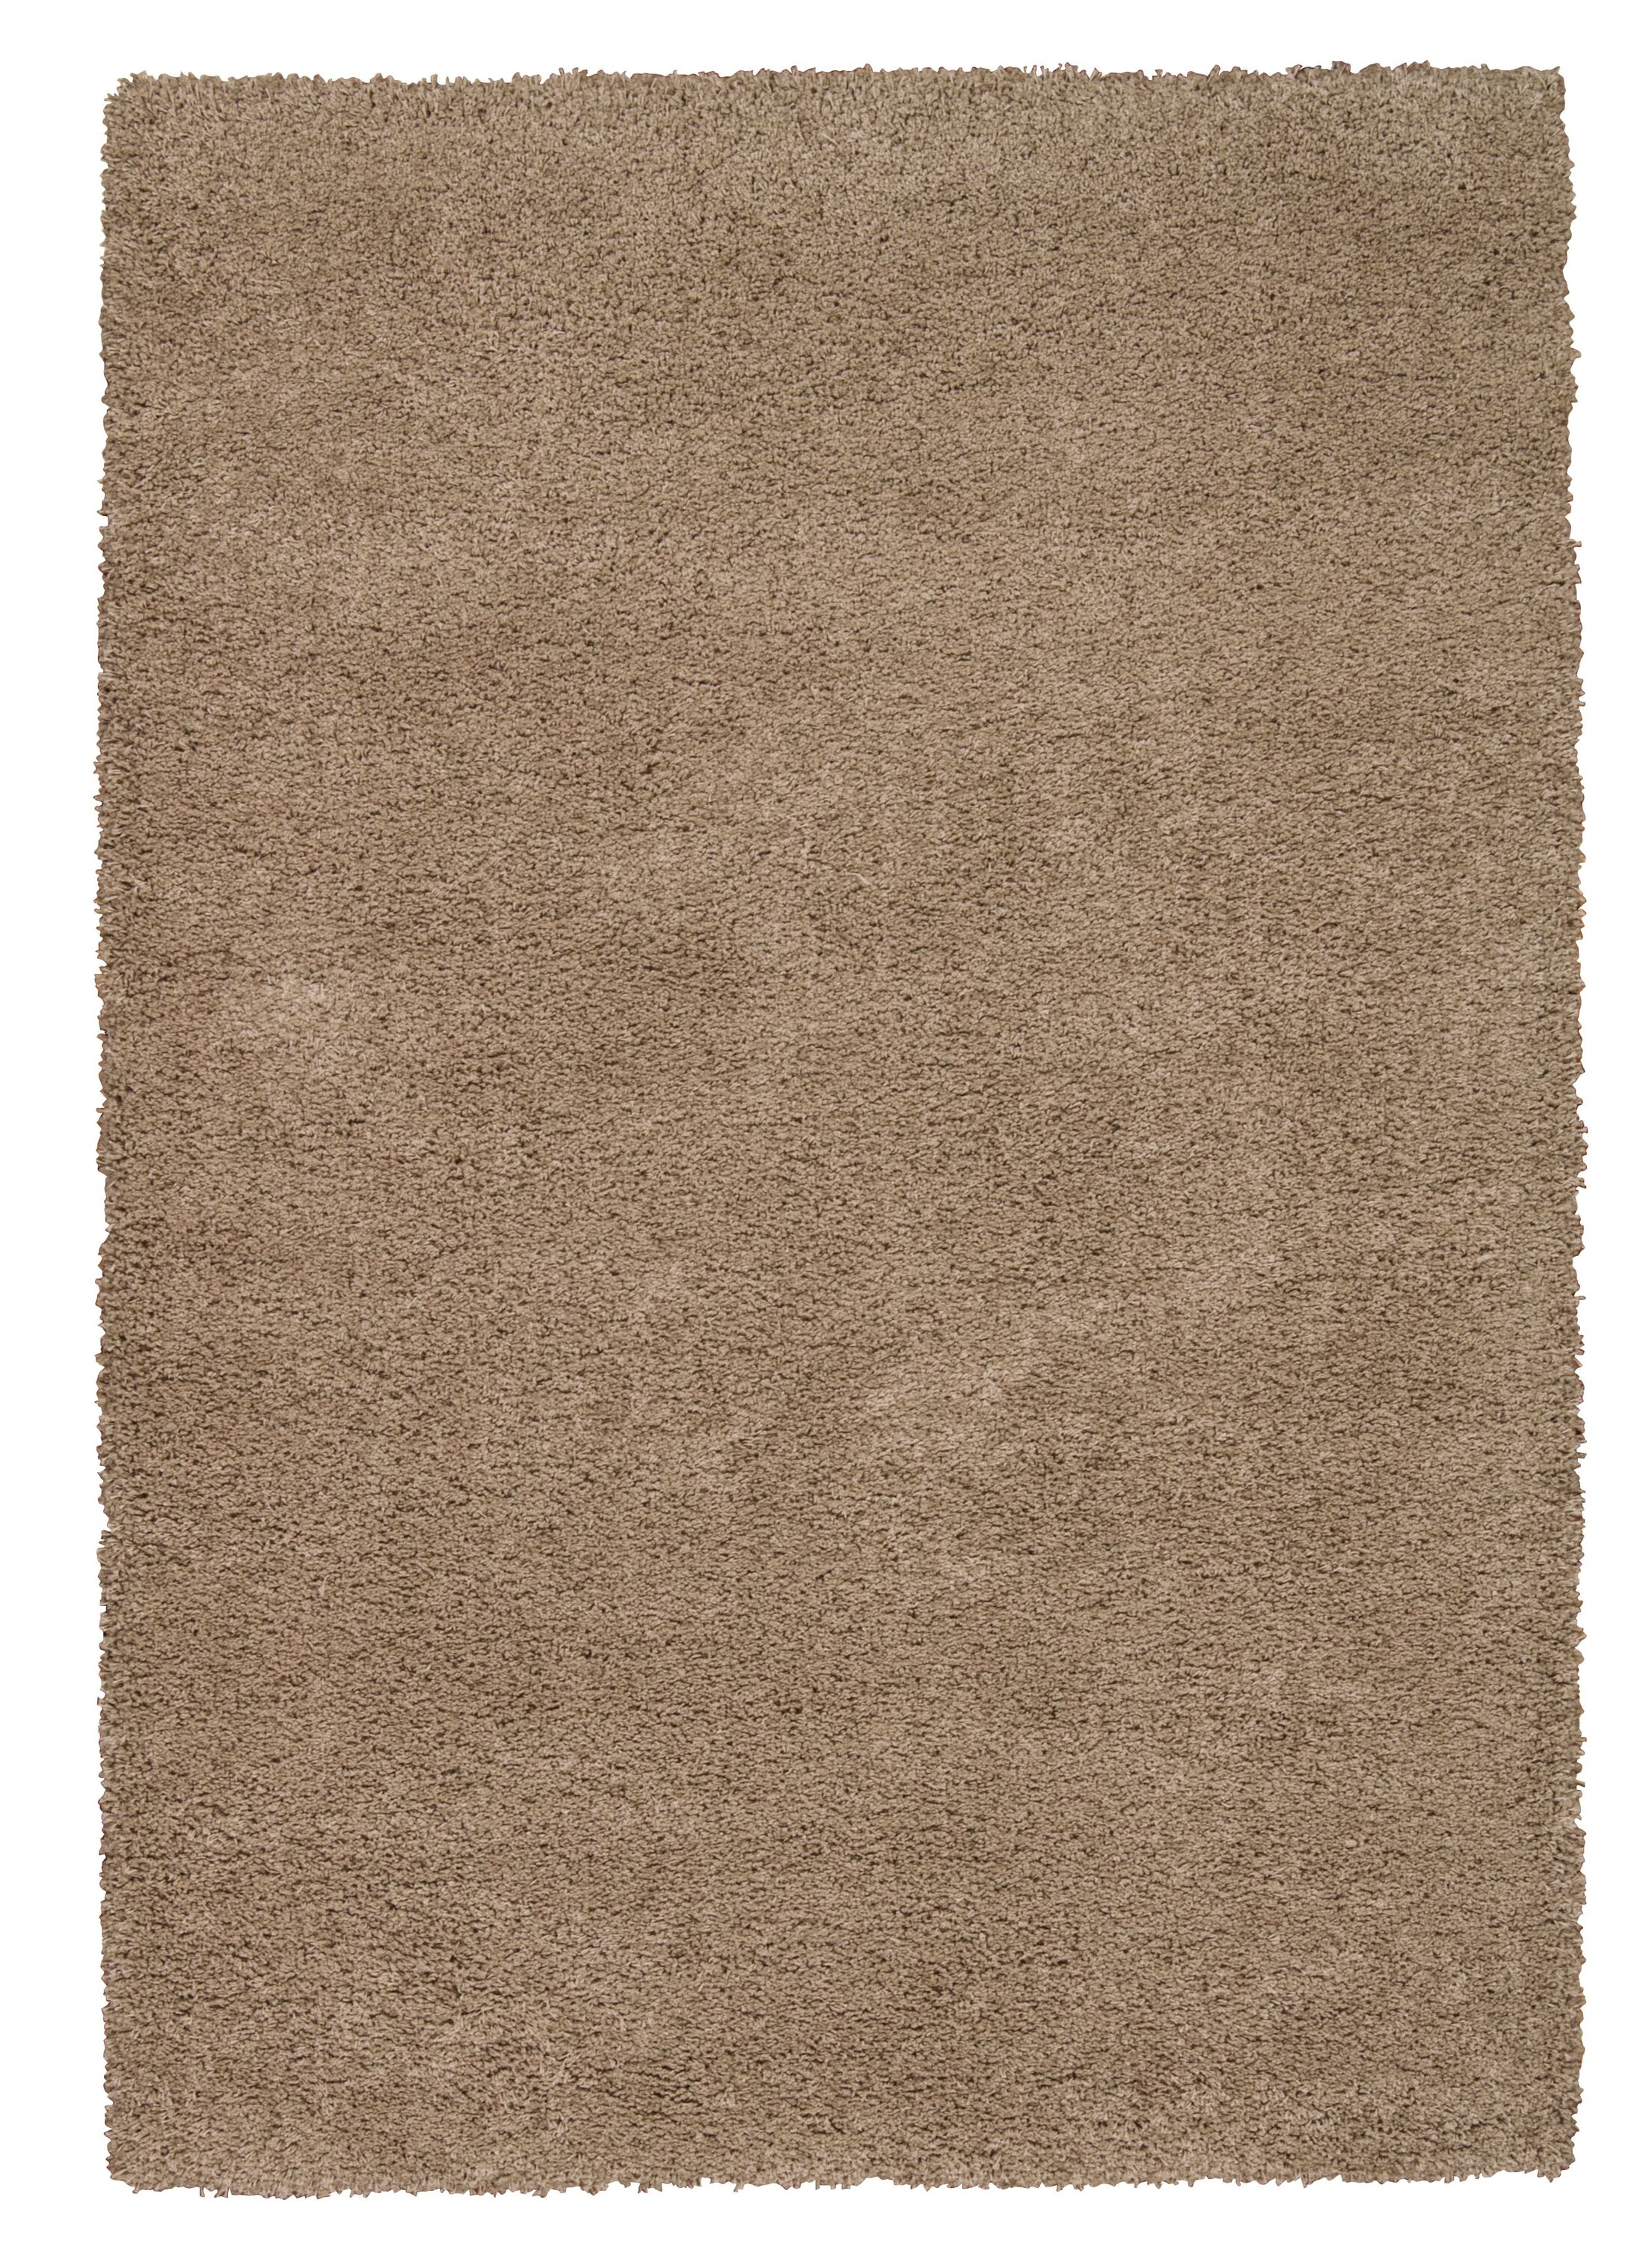 Shelley Oyster Area Rug Rug Size: Rectangle 7'10